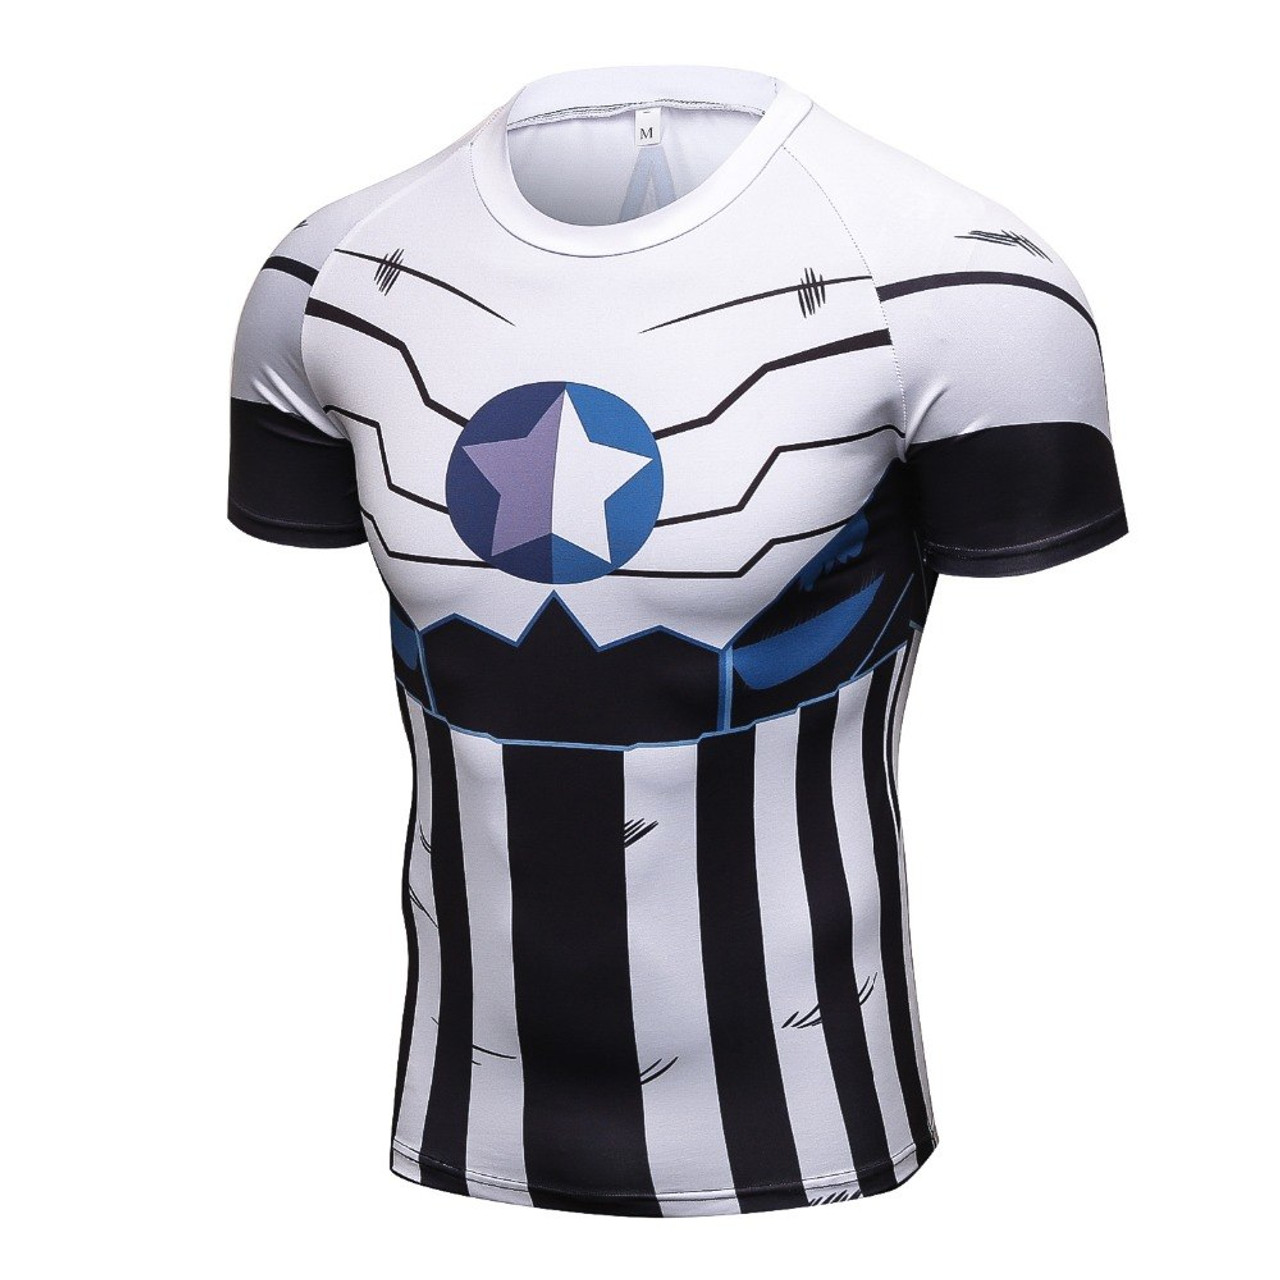 07484bb68 2017 new Compression Shirt Anime Superhero Punisher Captain America  Superman 3D T Shirt Fitness Tights Base Layer T Shirts - OnshopDeals.Com